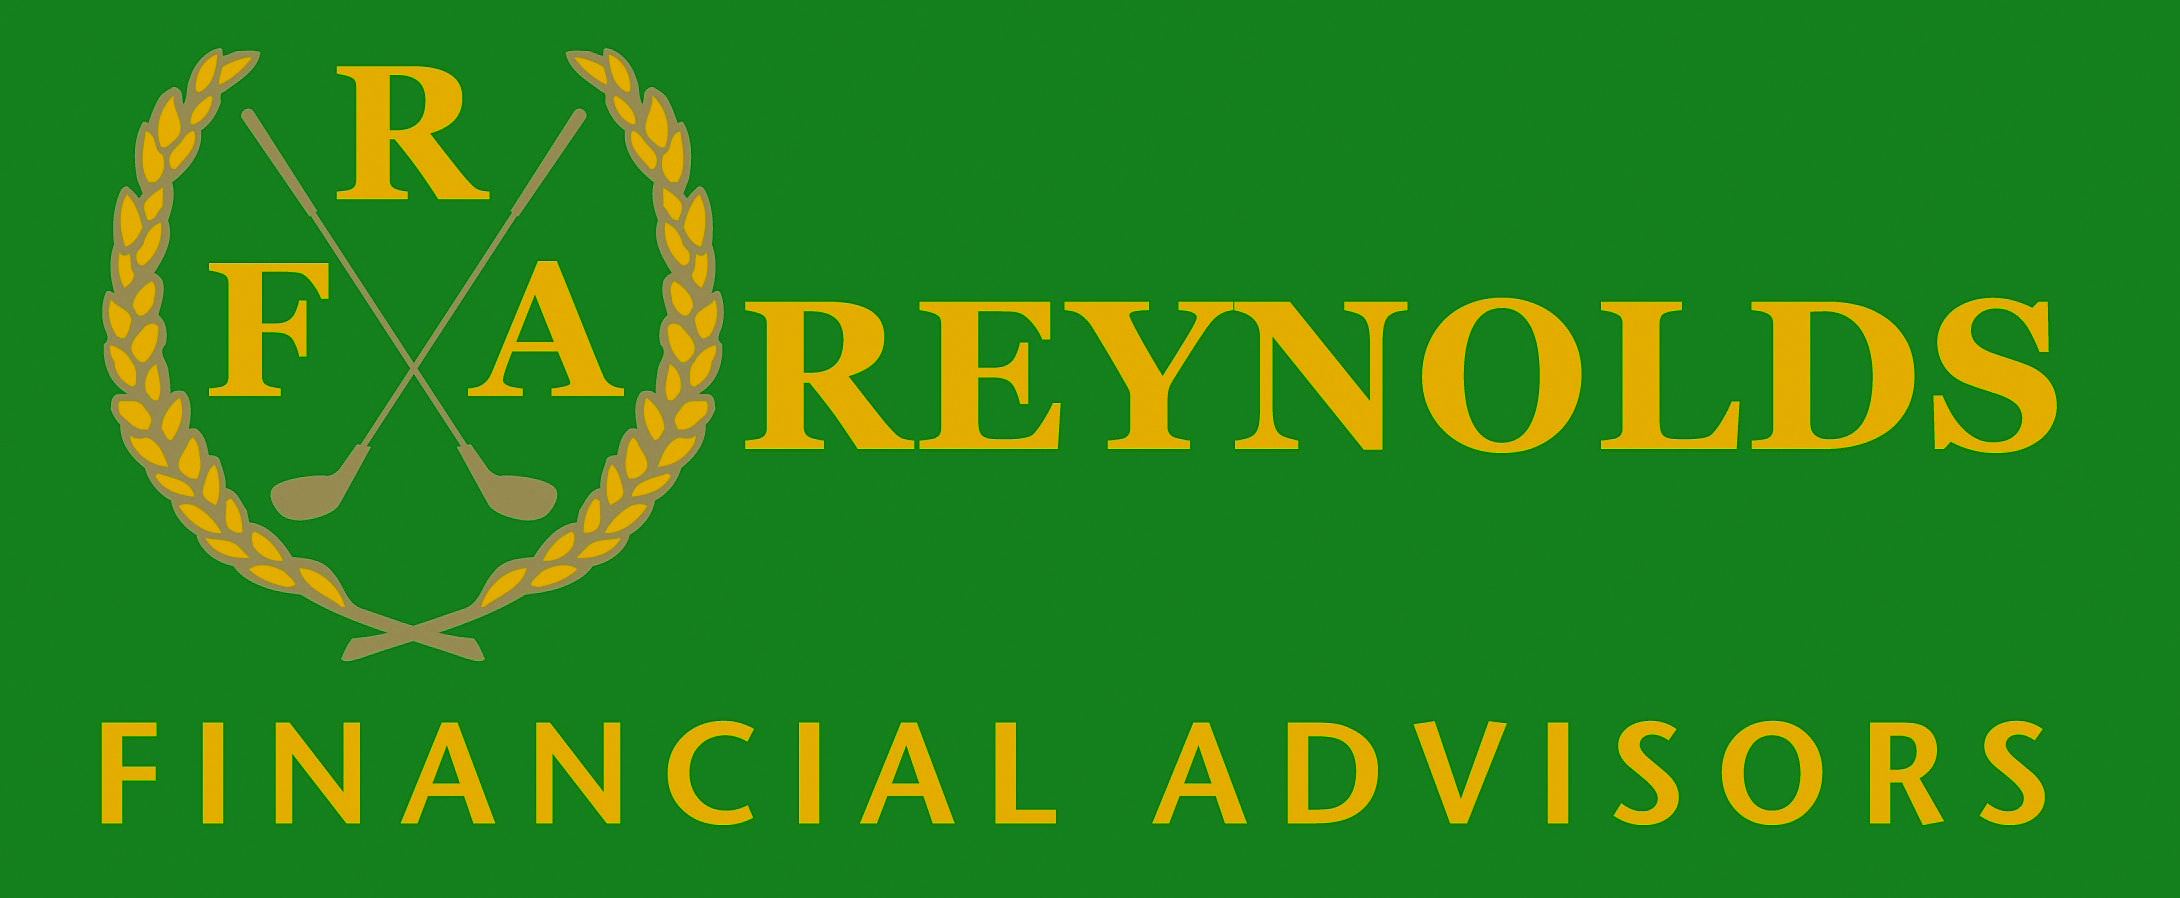 Reynolds Financial Advisors